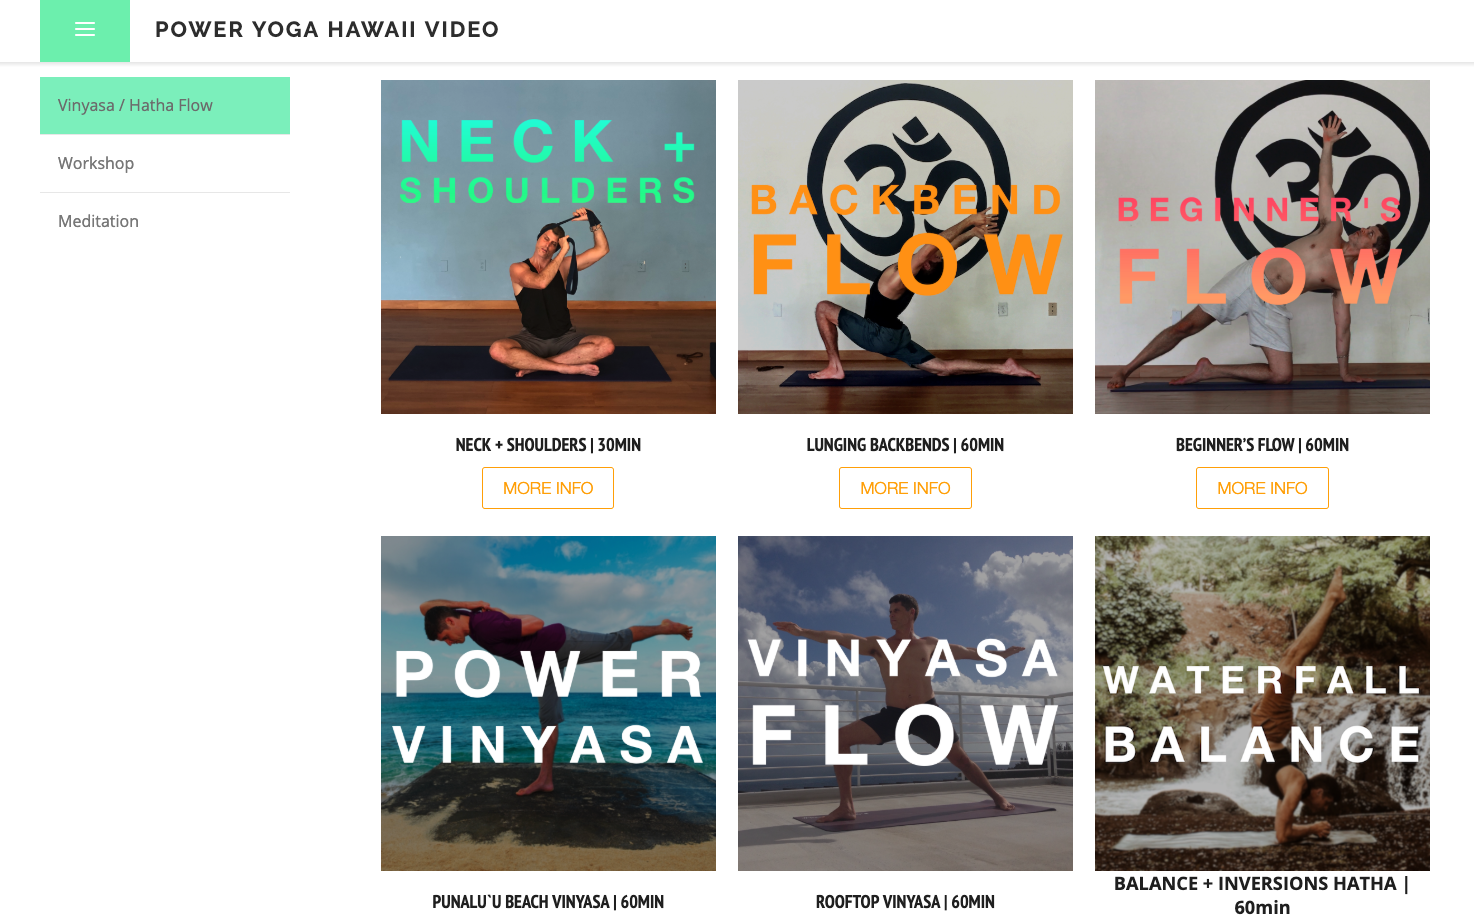 Power Yoga Hawaii Video - Site Setup, Customization & Management, Image Curation, Video on Demand E-commerce, Photography